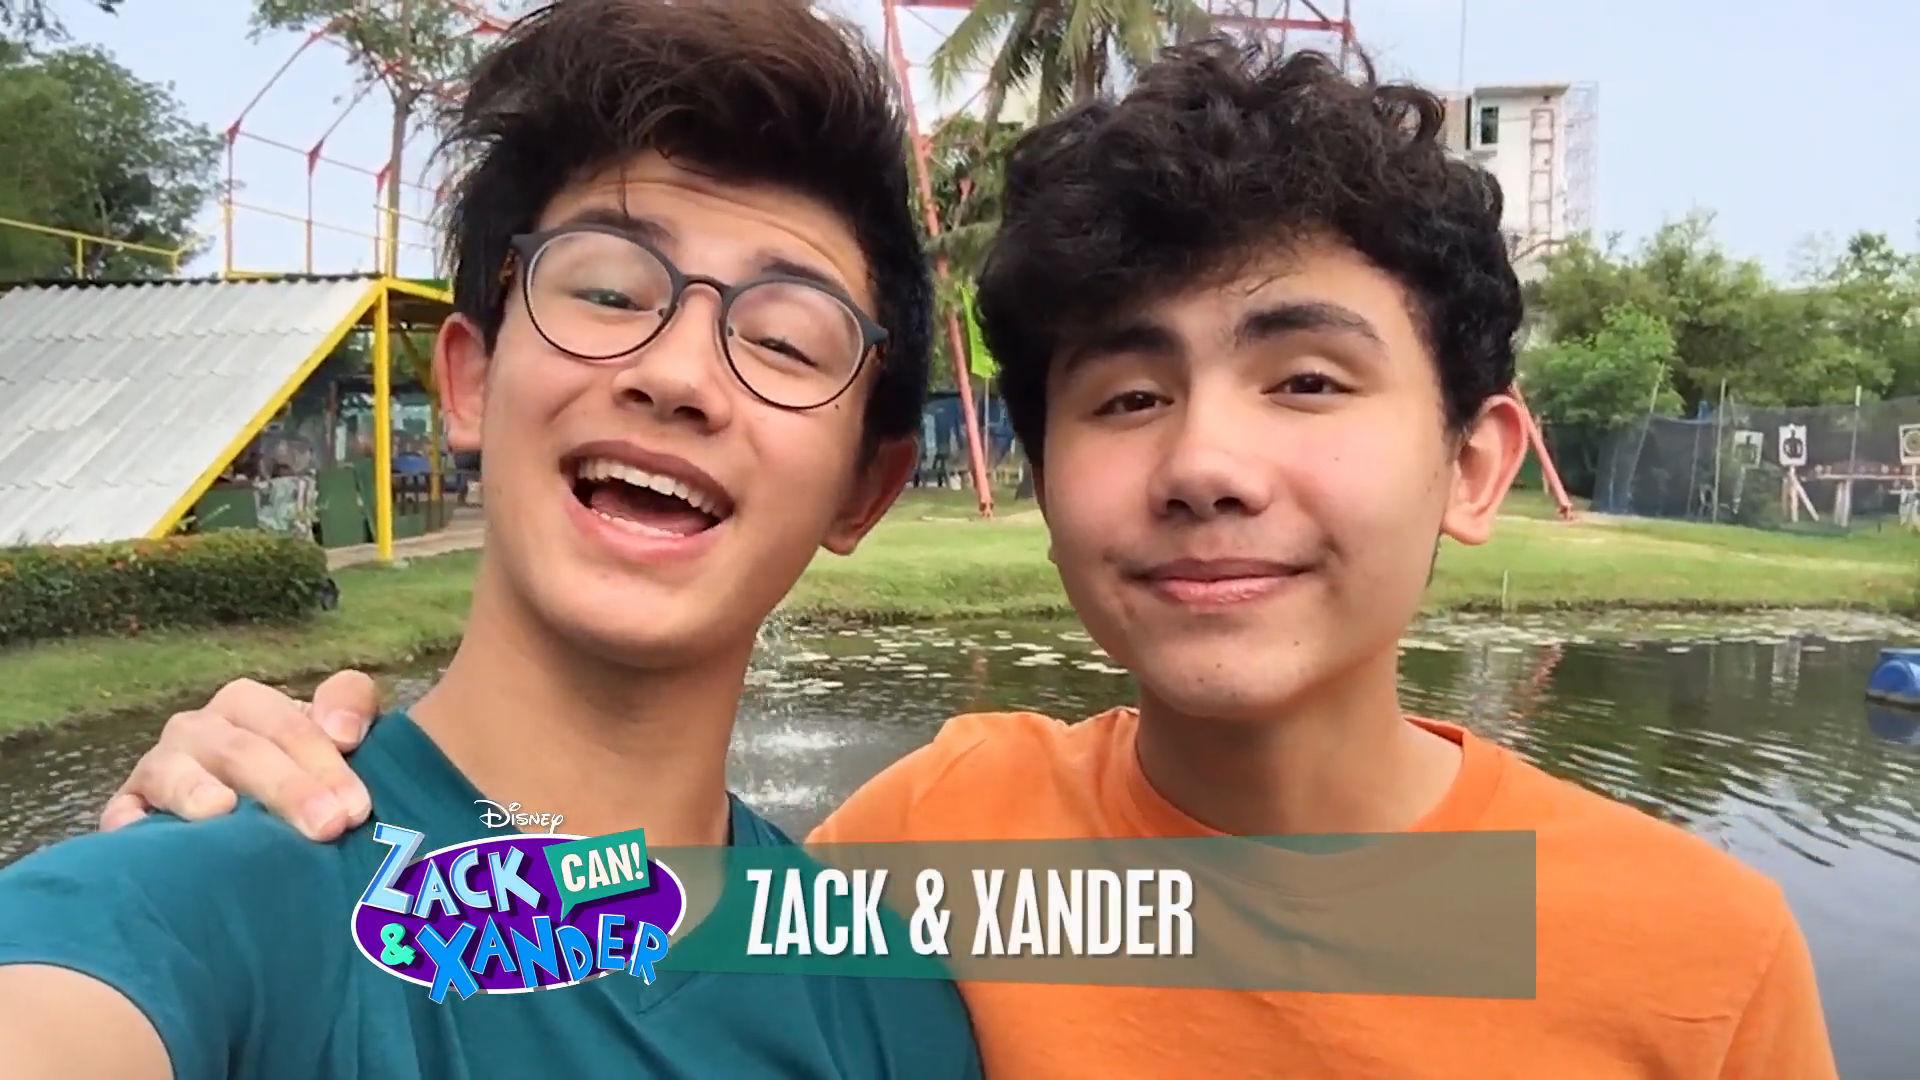 Zack & Xander Greeting 2 | Zack & Xander CAN! Web Series